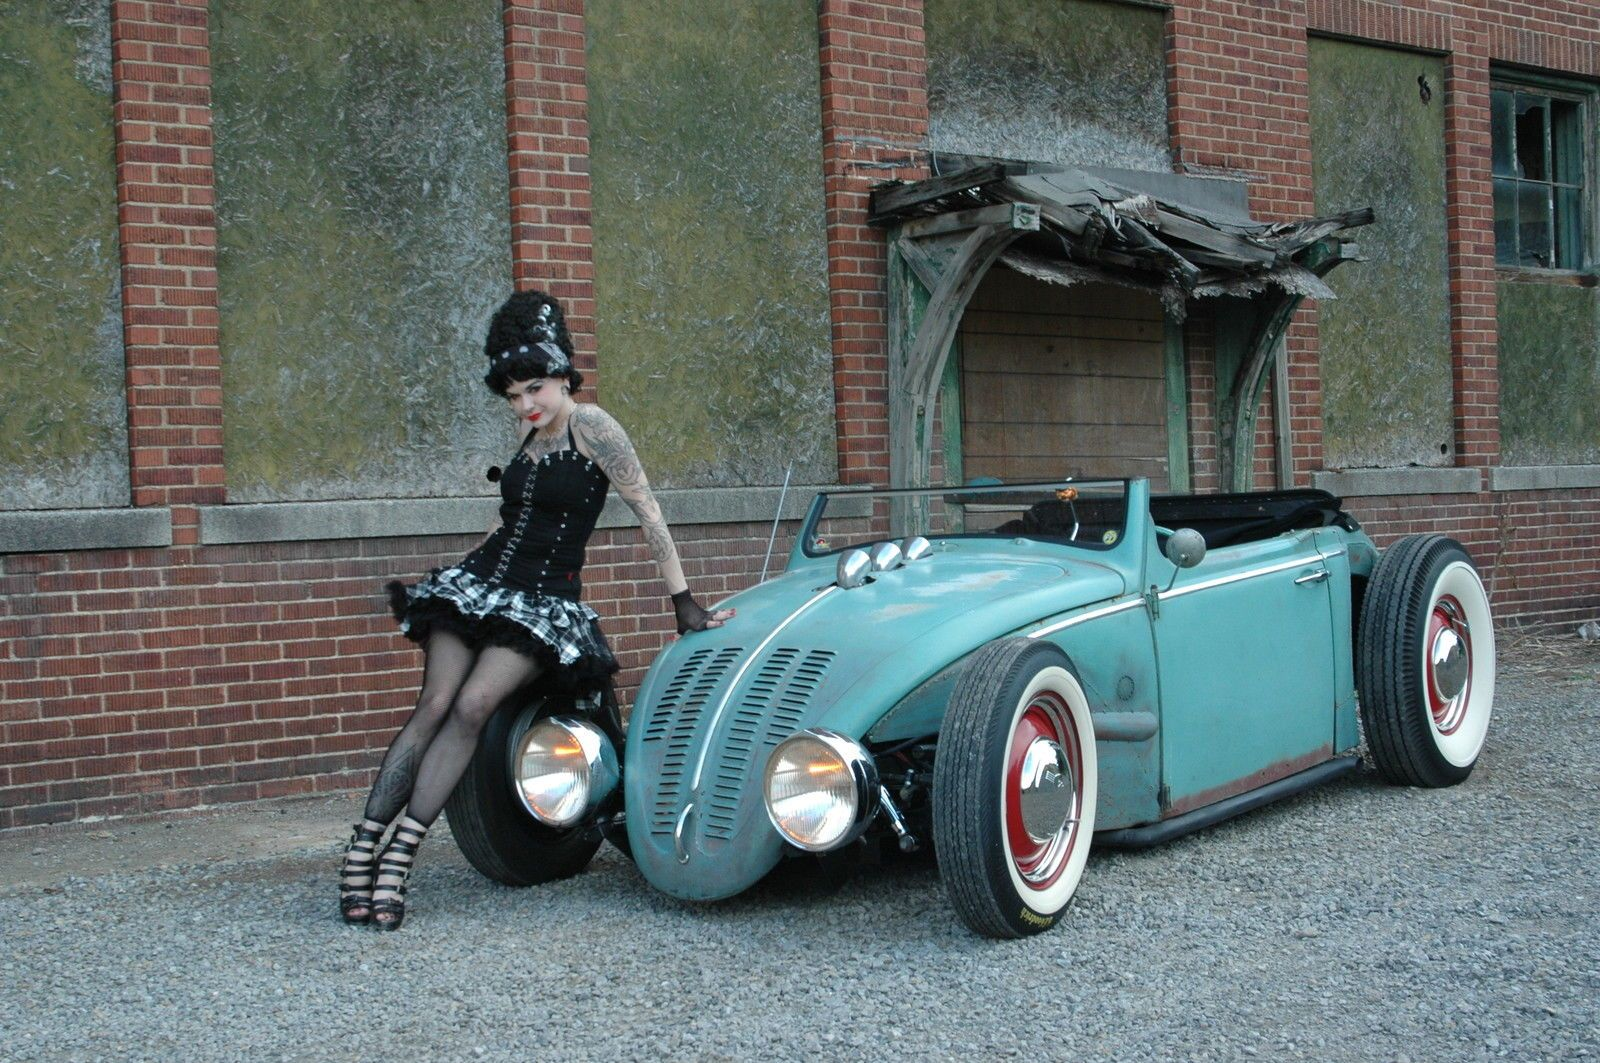 Special cars volkswagen beetle bug v8 - Vw Beetle Rat Rod Google Search